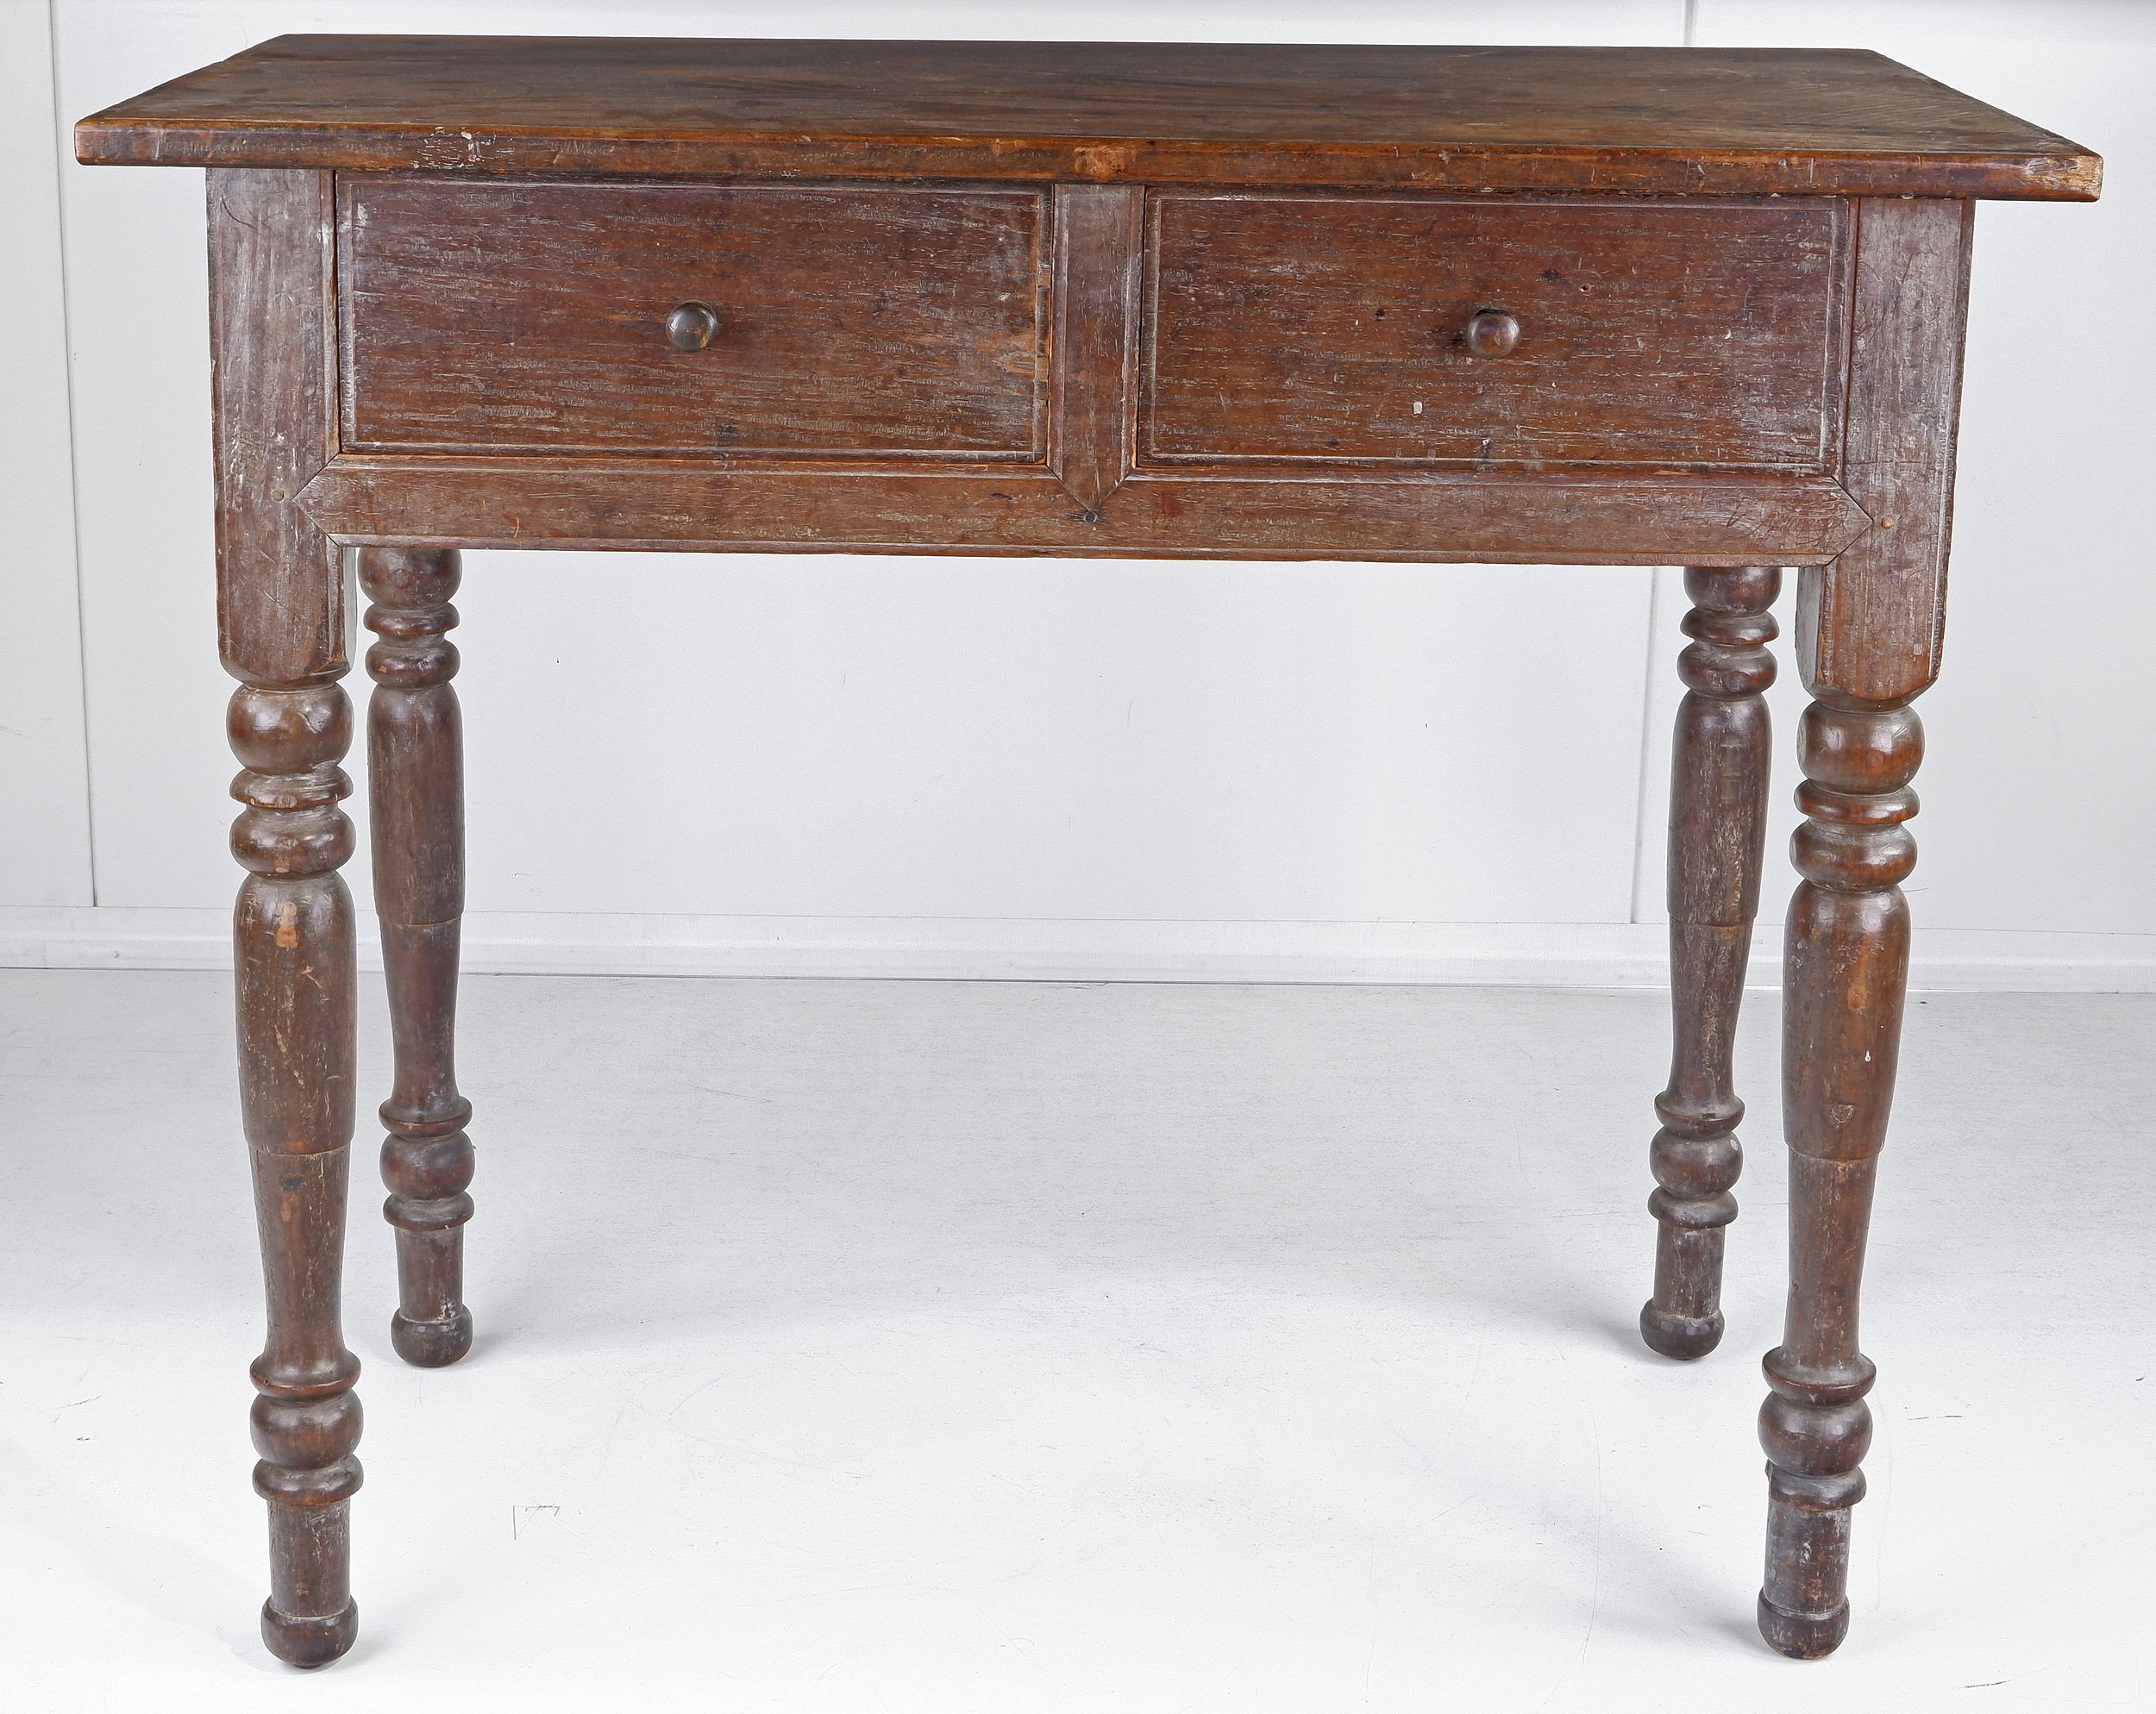 'East Indies Colonial Style Two Drawer Side Table 19th Century'